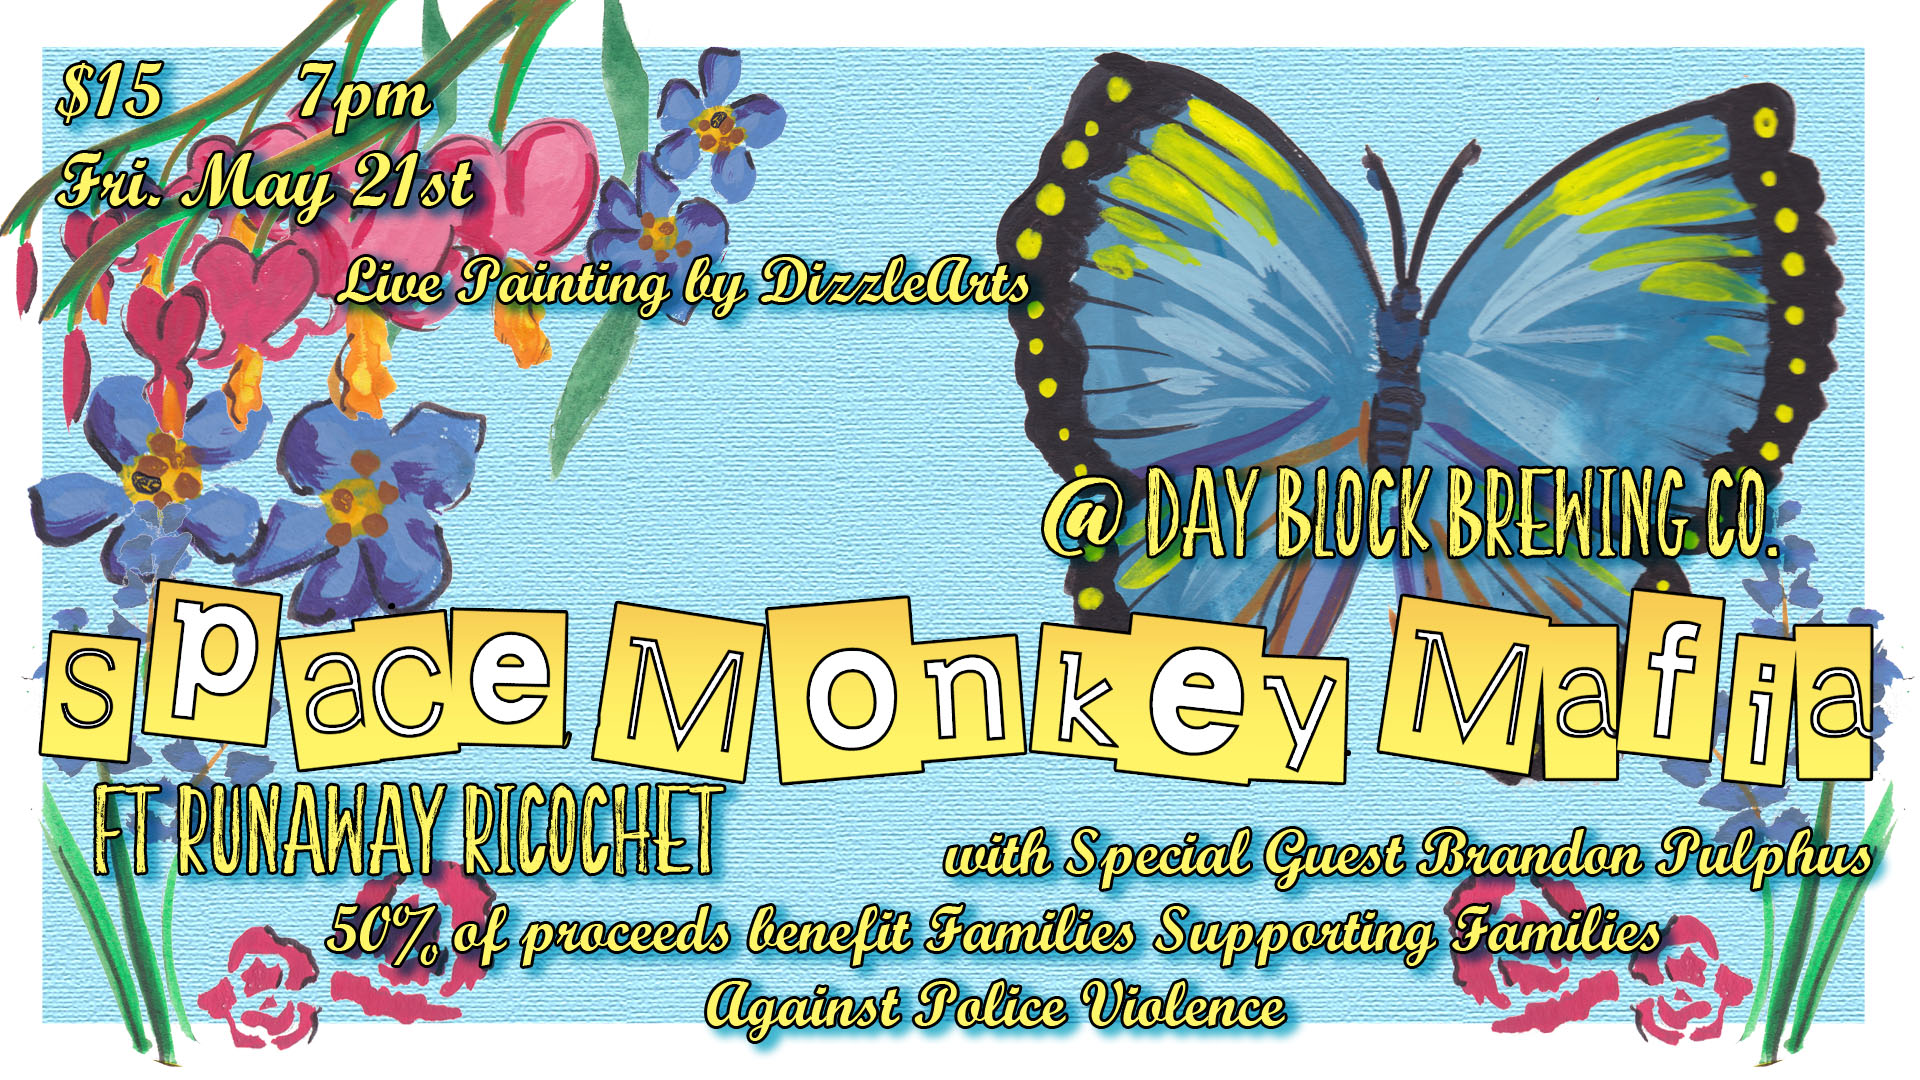 Space Monkey Mafia and Friends at Day Block Brewing